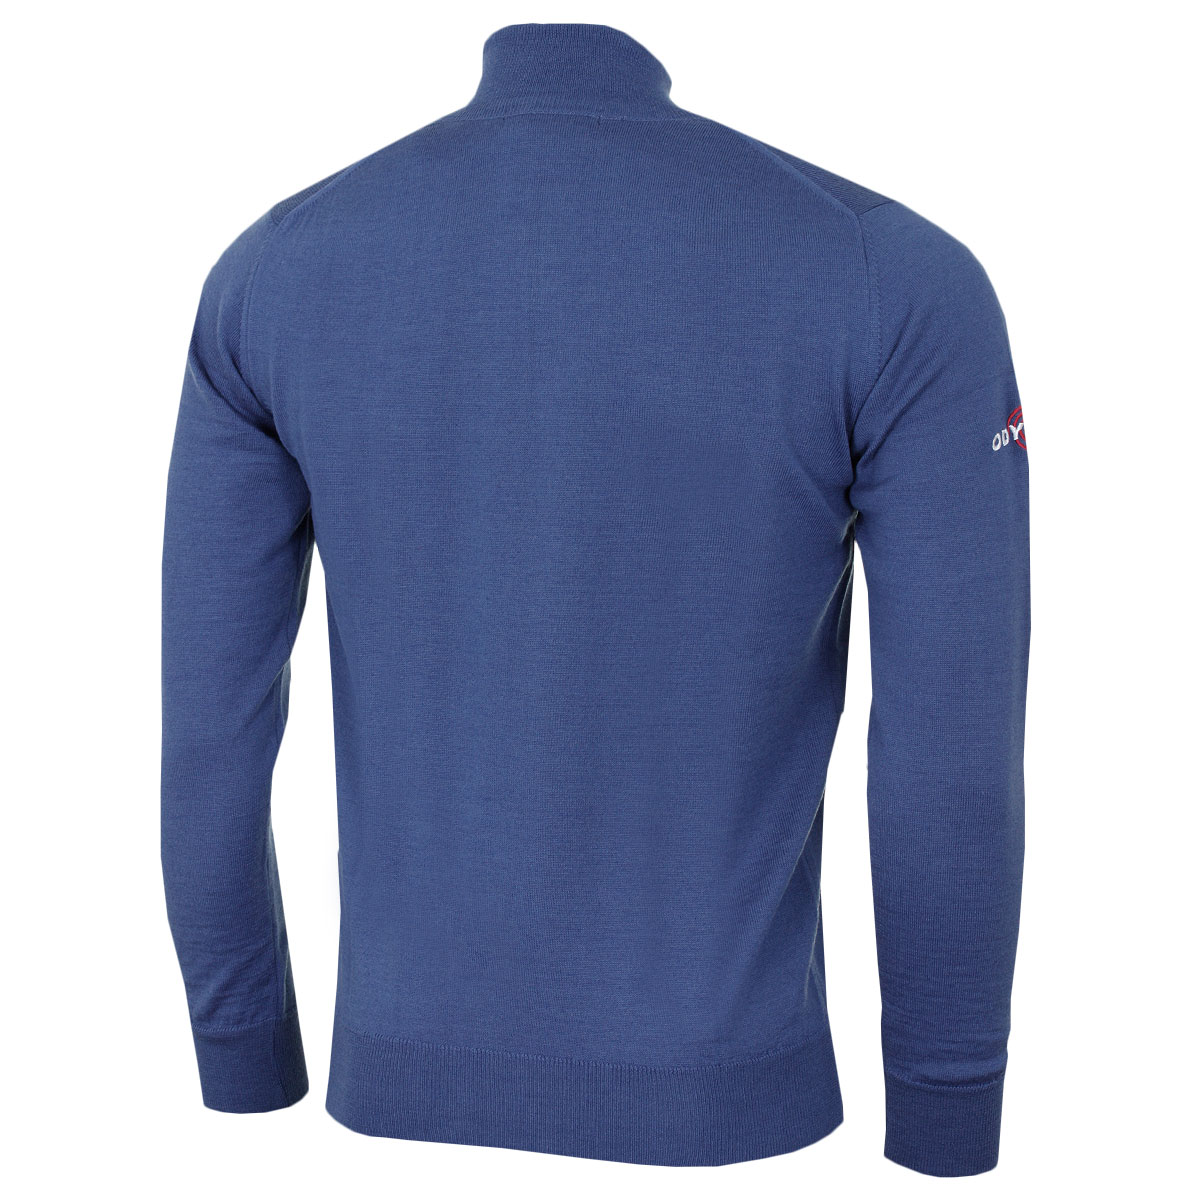 Callaway-Golf-Mens-2018-1-4-Zip-Merino-Mix-Wool-Thermal-Sweater-45-OFF-RRP